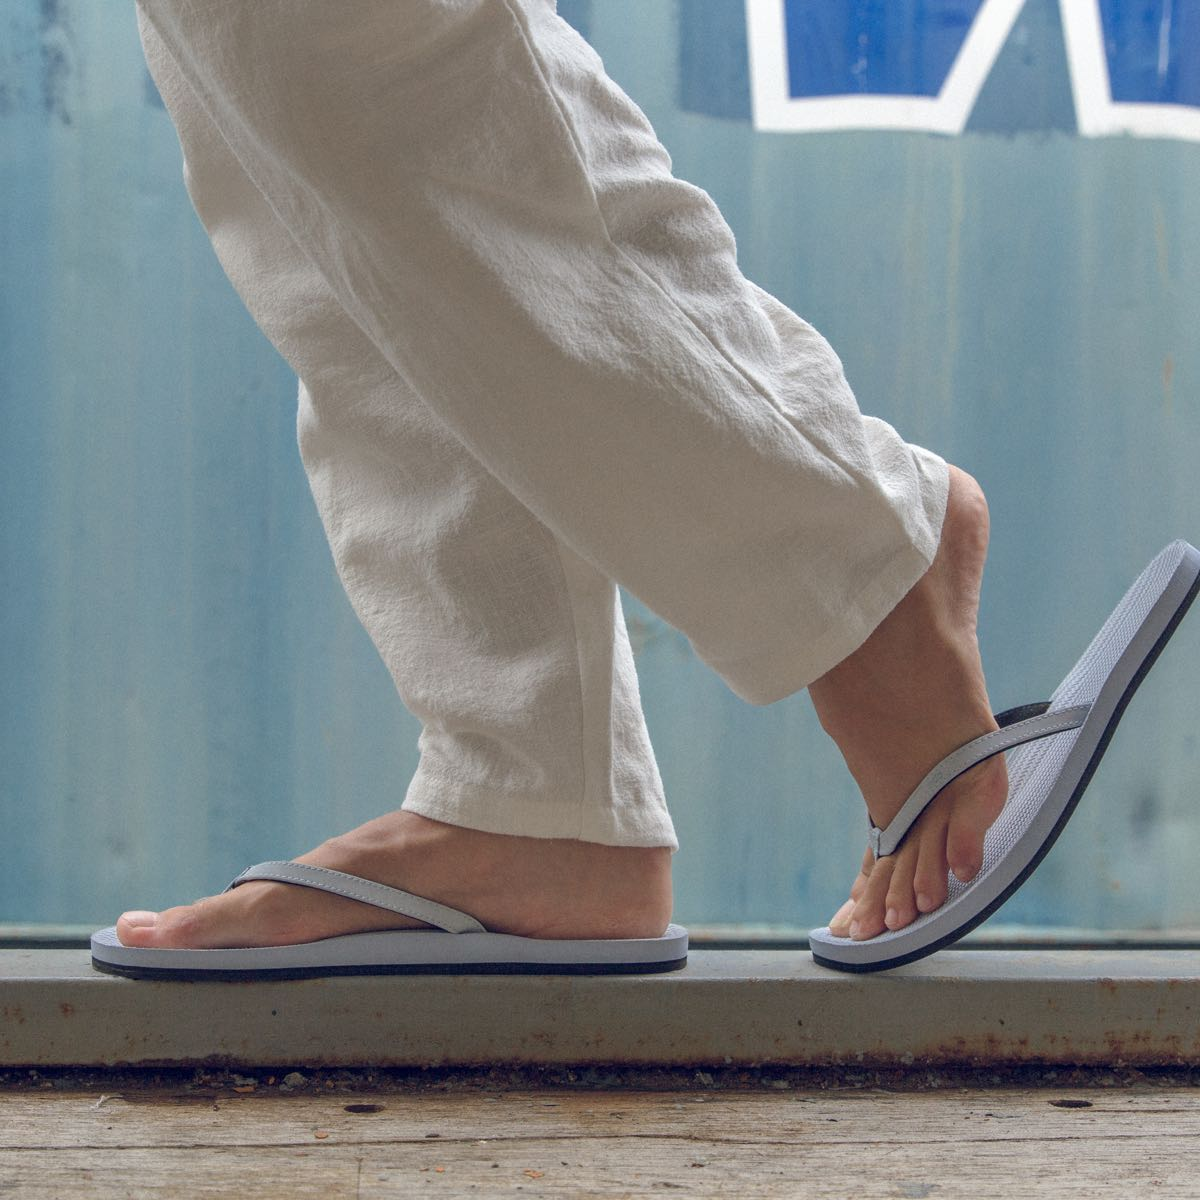 Woman wearing light shore Indosole flip flops and white pants